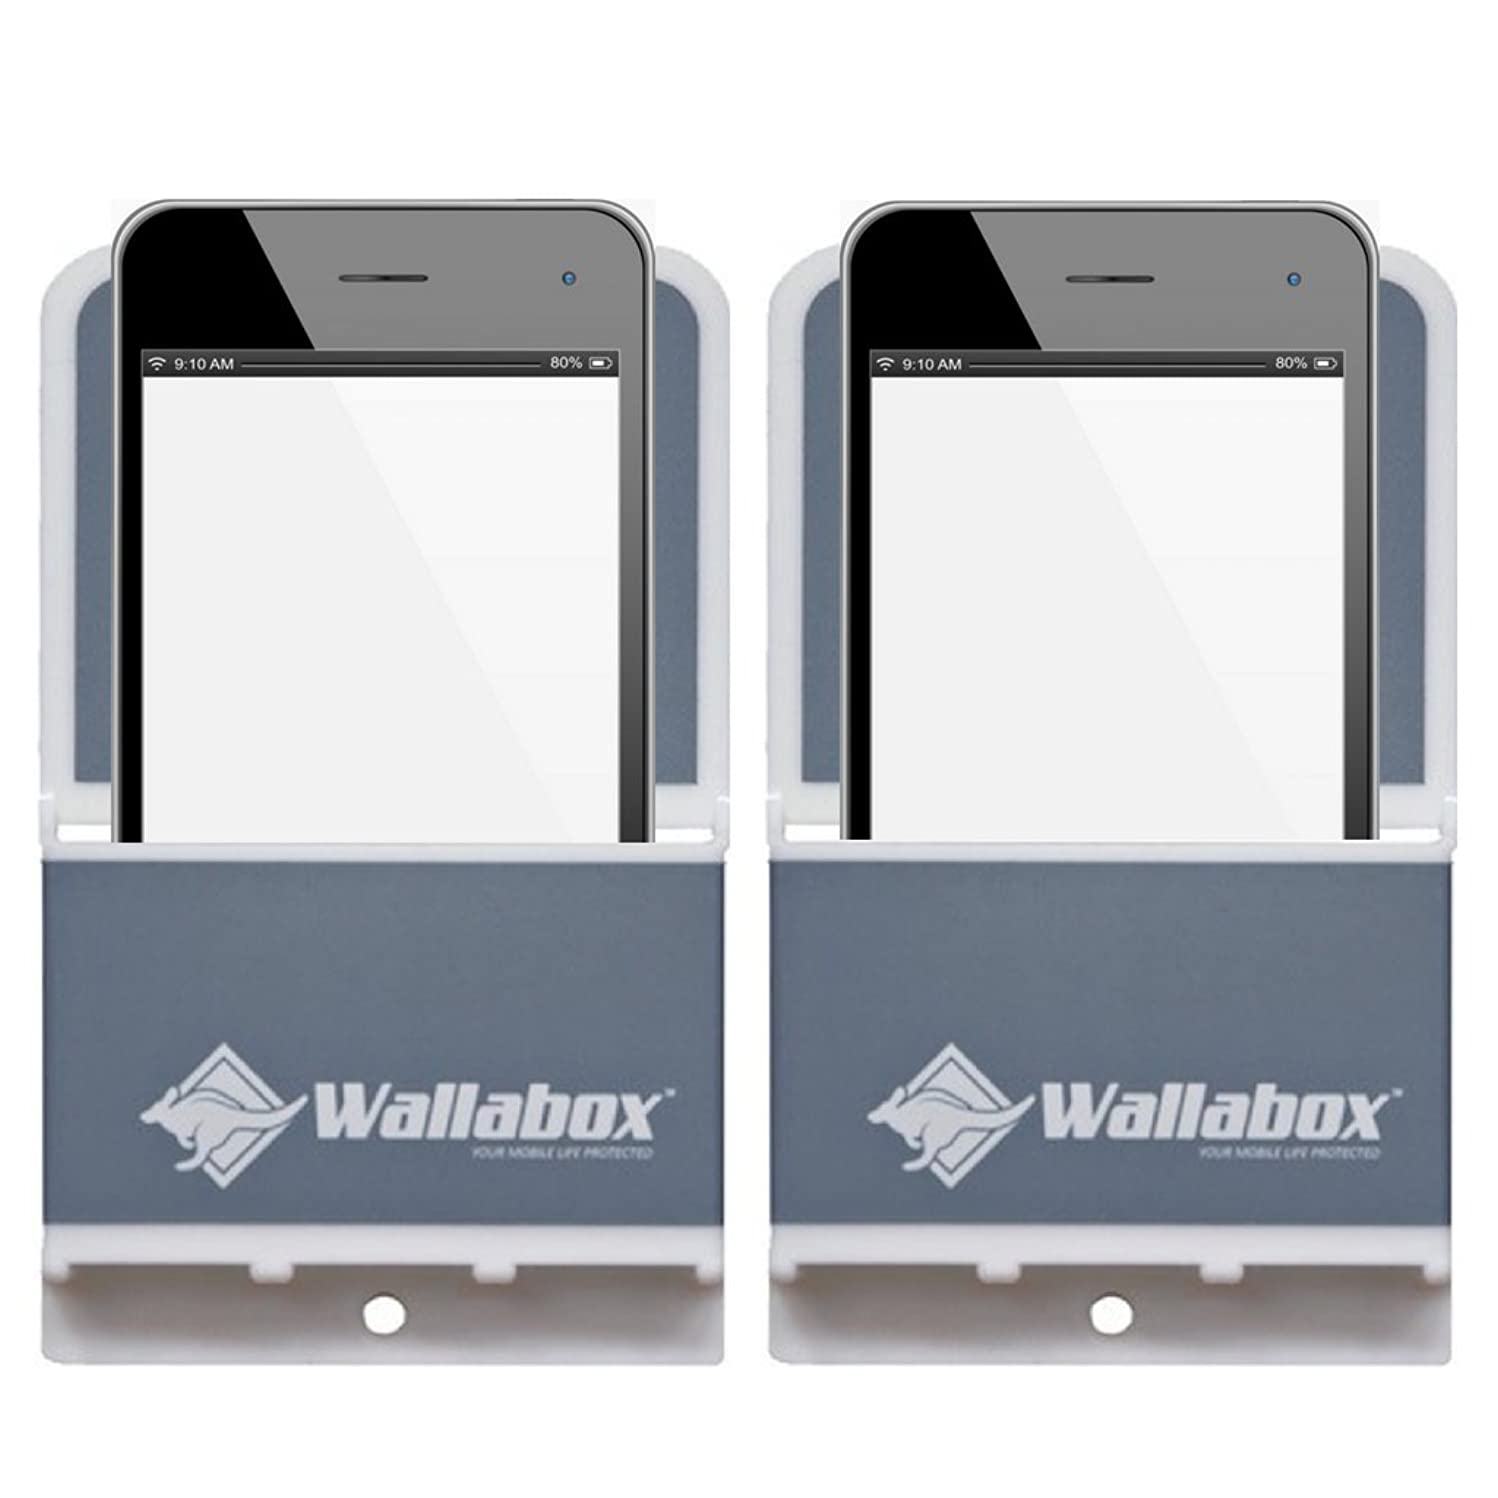 Wallabox 2-Pack (Steel Gray) - Universal Cell Phone Holders, Wall Mount – Fits All iPhone & Android Phones. Great for Bedroom, Bathroom, Office, Car, Charging Station. 3M Removable Non-Damaging Strips